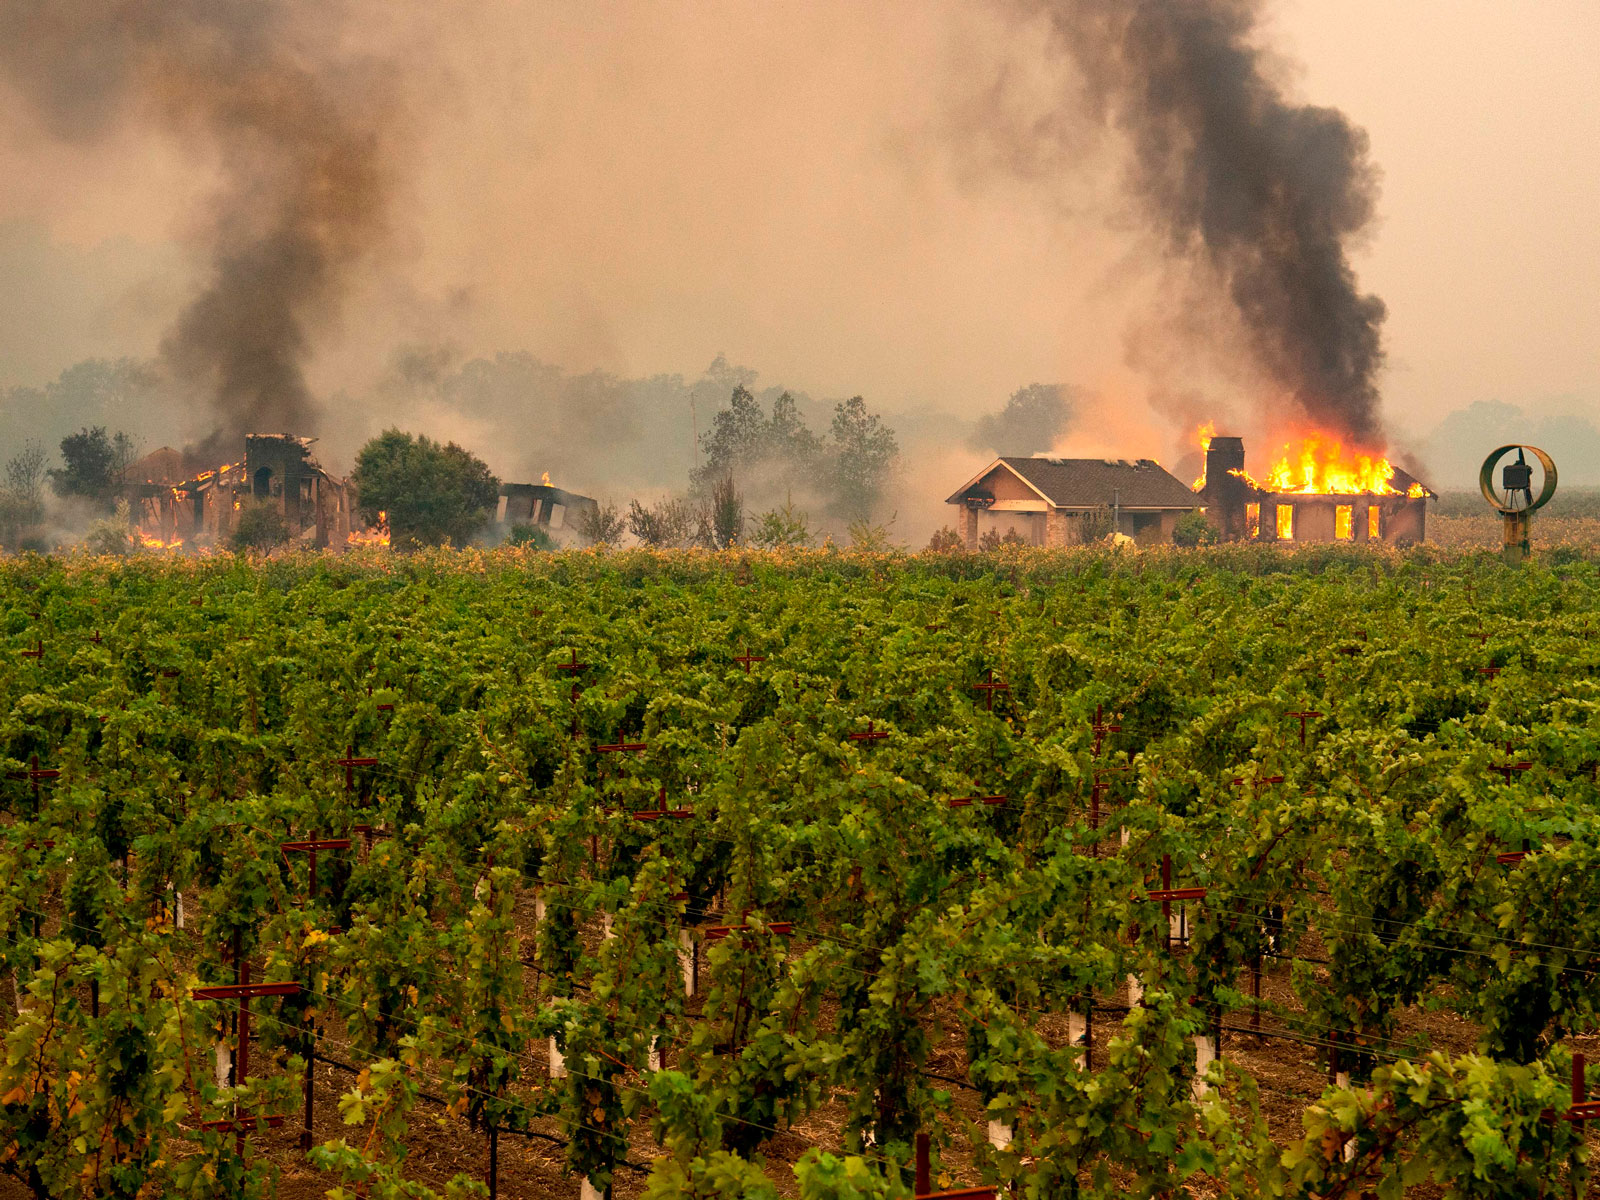 sonoma-wine-wildfire-FT-BLOG1019.jpg